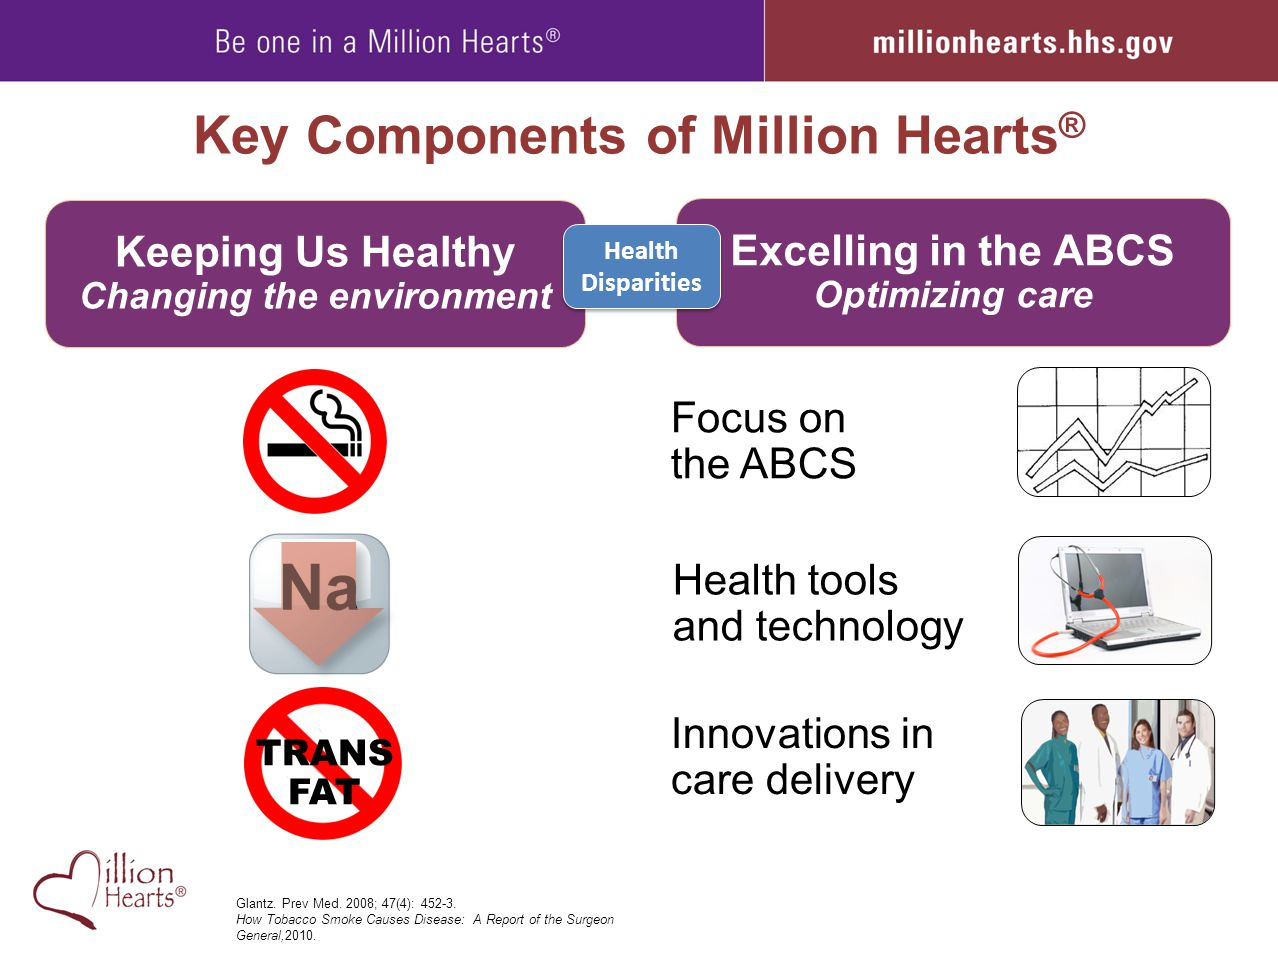 Excelling in the ABCS Optimizing care: Care Innovations Team-based care –Utilizing full scope of practice –Collaborative Drug Therapy Management Self-measured BP monitoring with clinical support Payment for improved health outcomes from innovative models of care